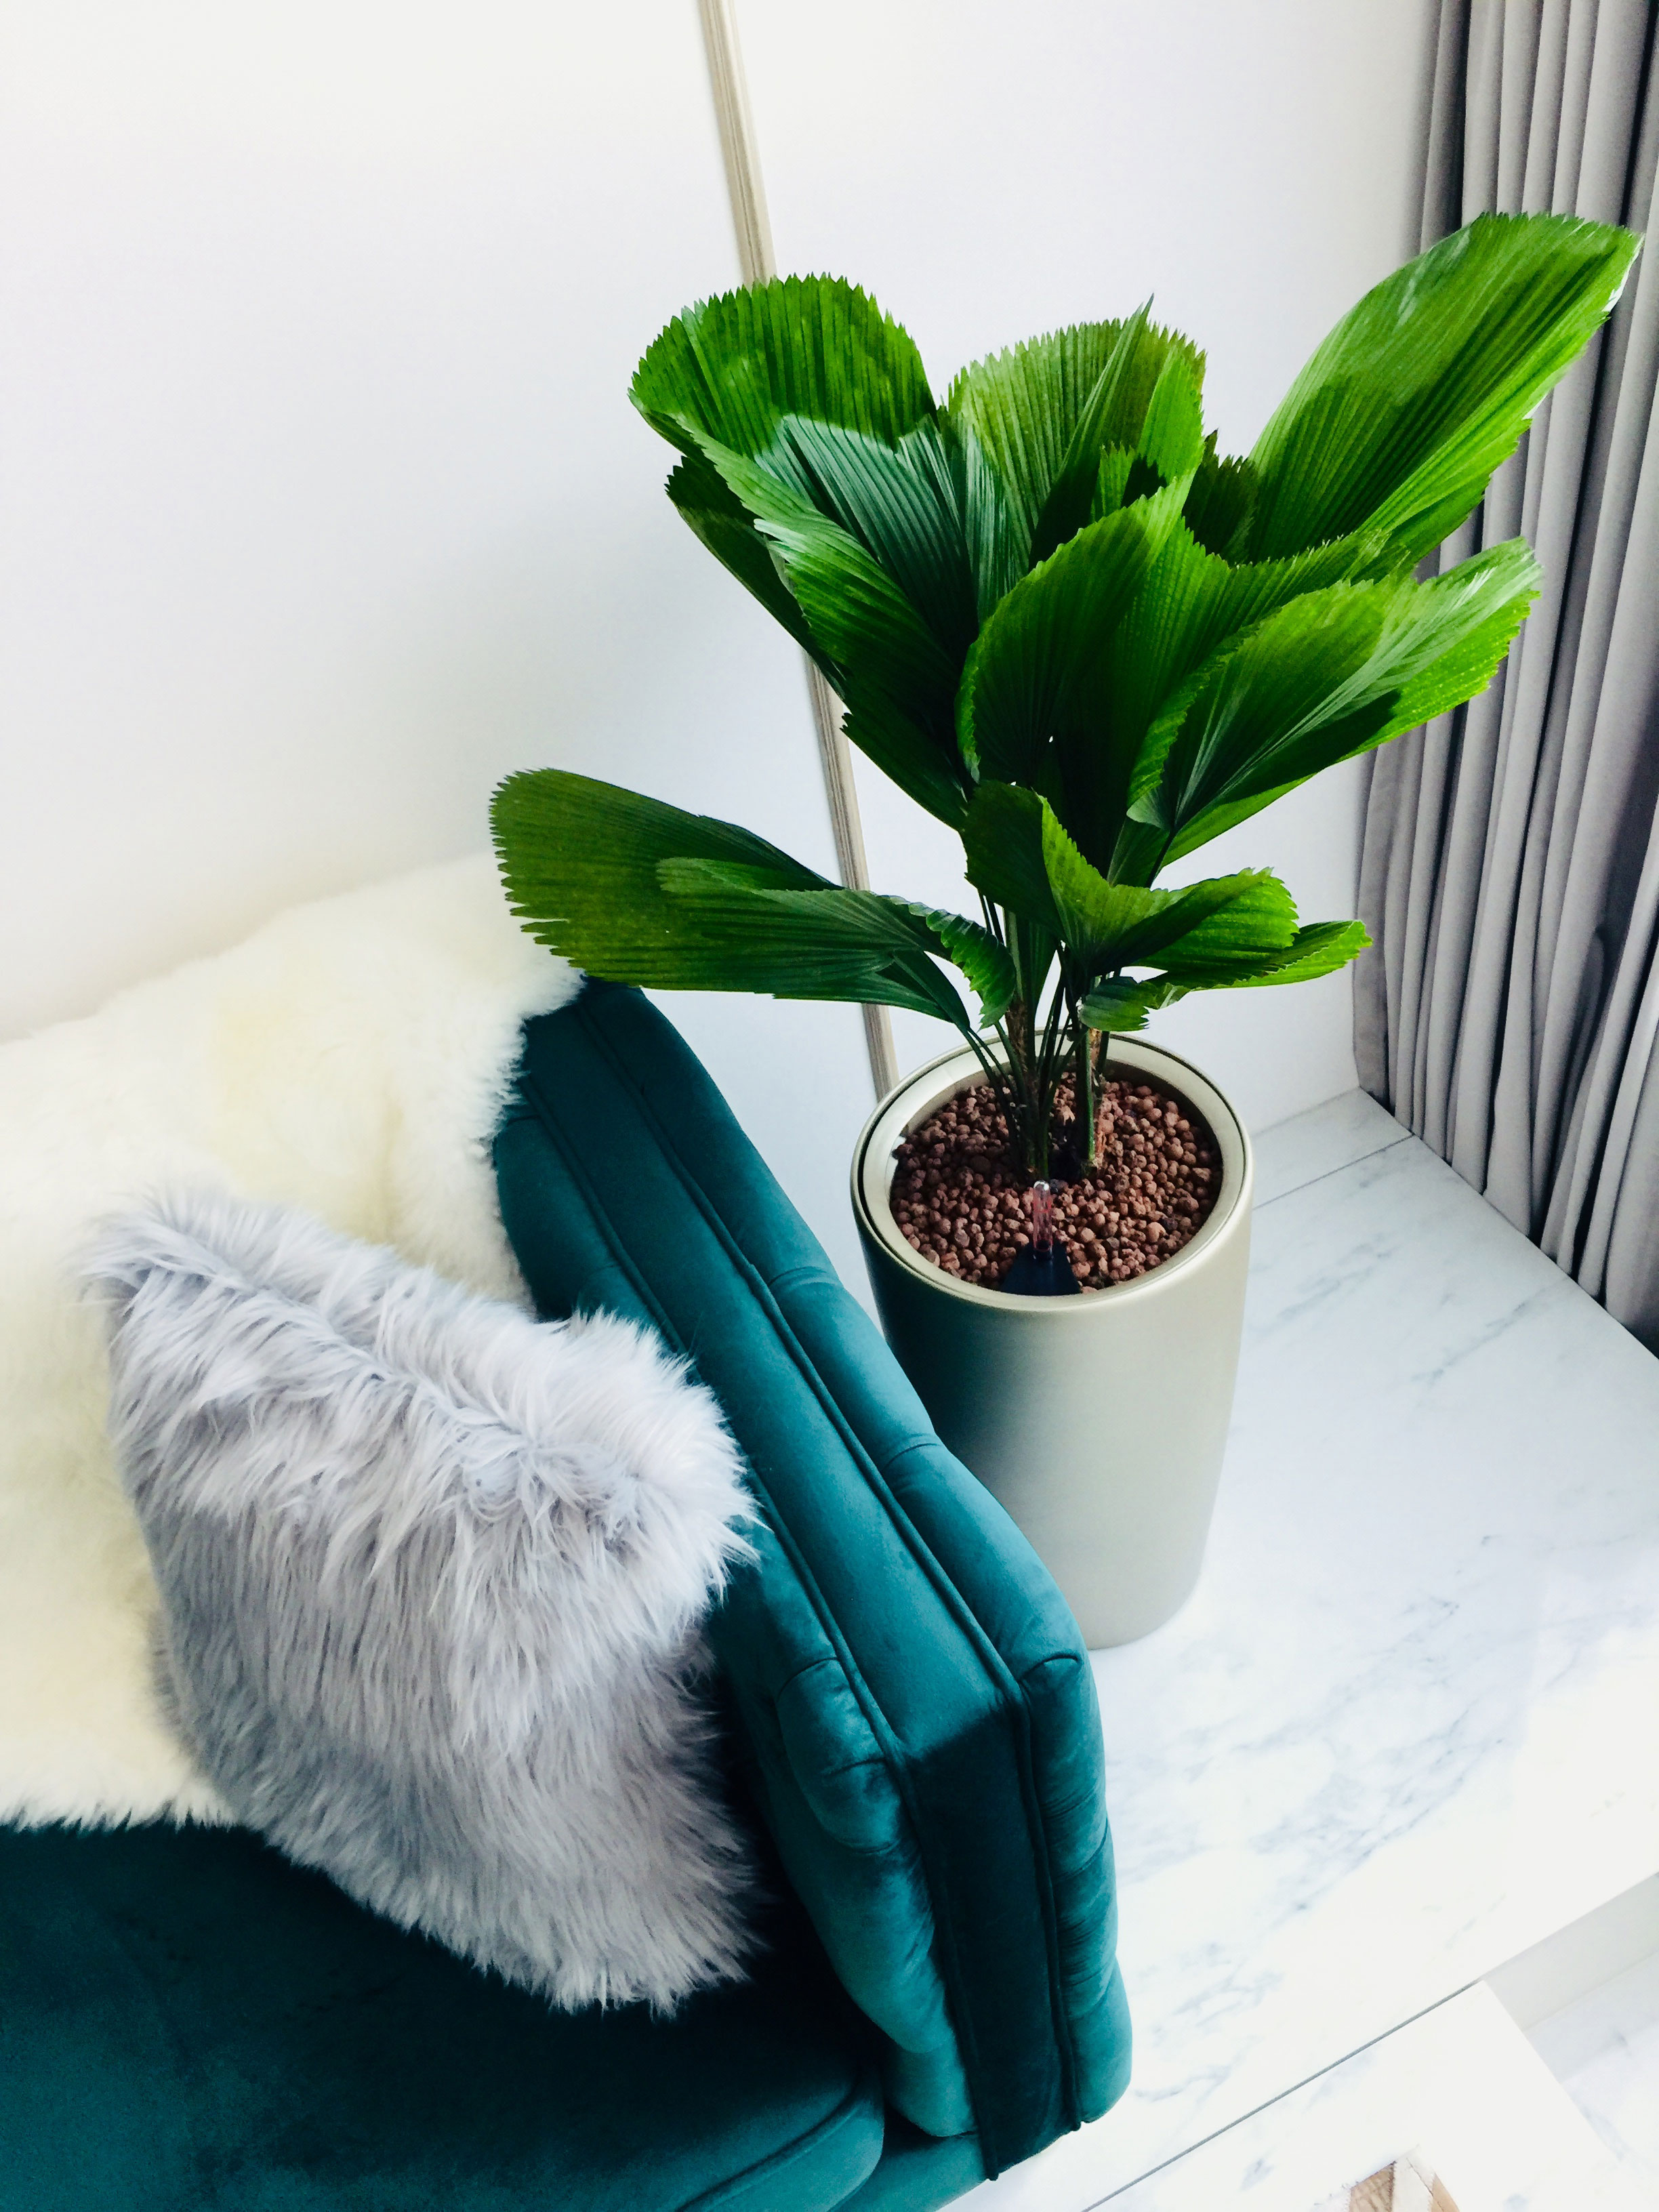 Specially selected plant adds to the space's lushness while providing a natural balance.